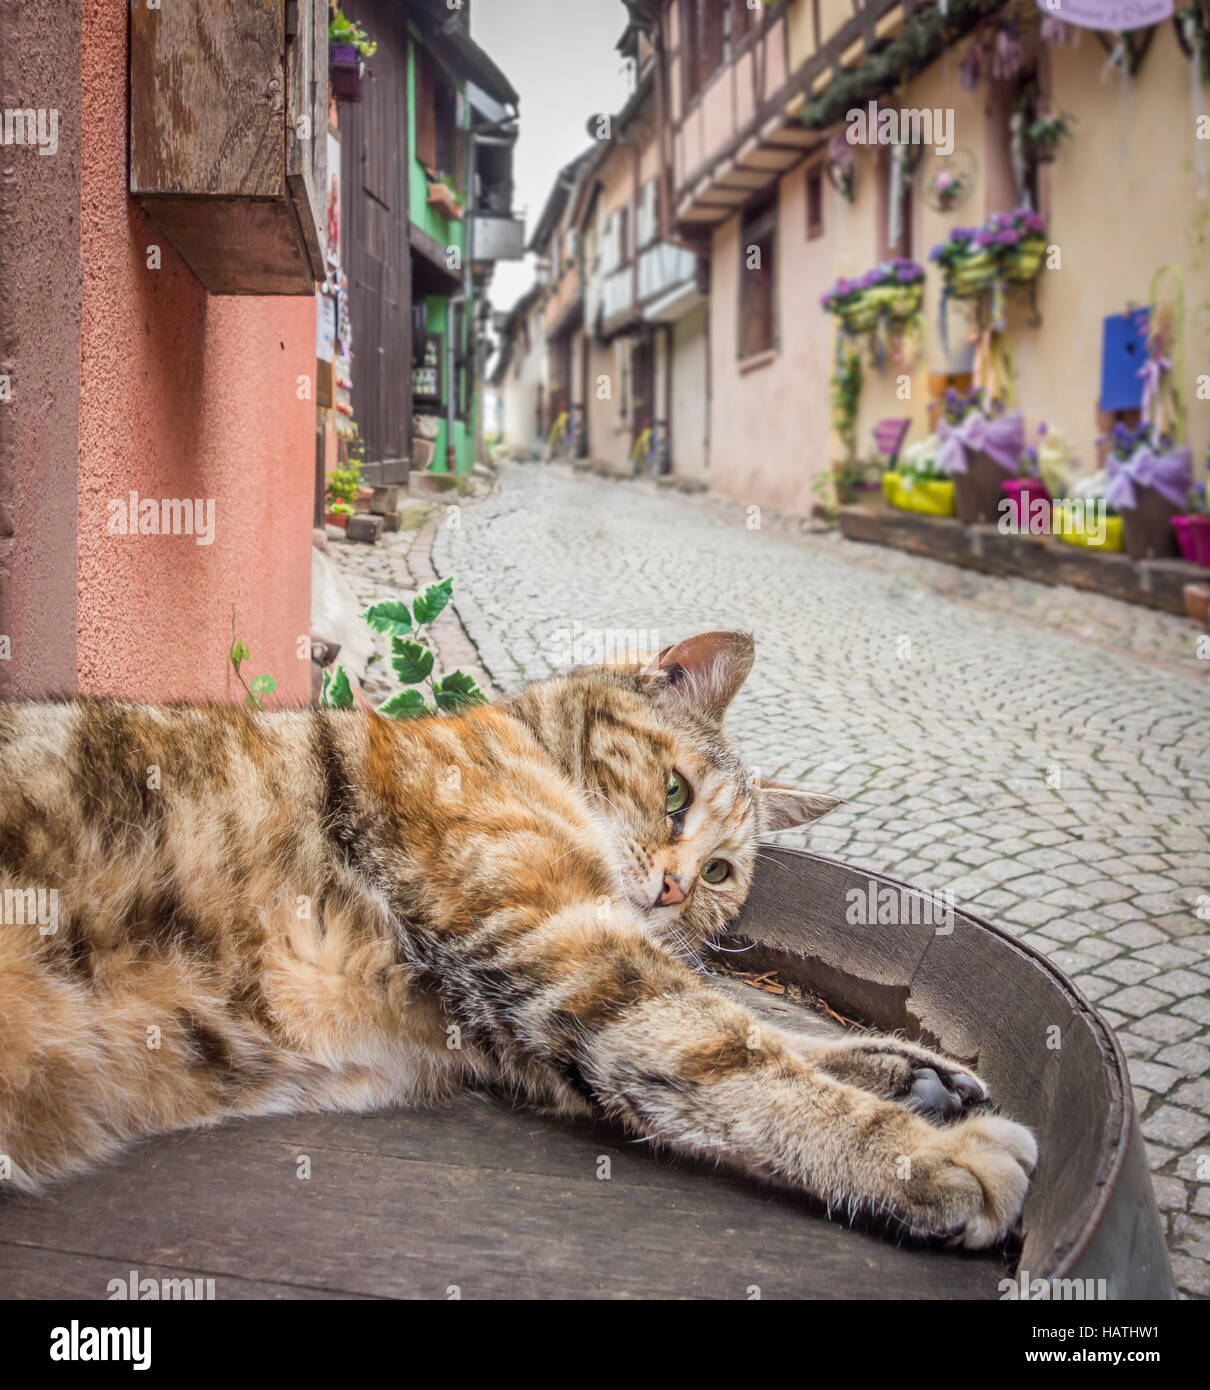 A lazy cat sprawling out on a quaint street in Riquewihr, France. - Stock Image